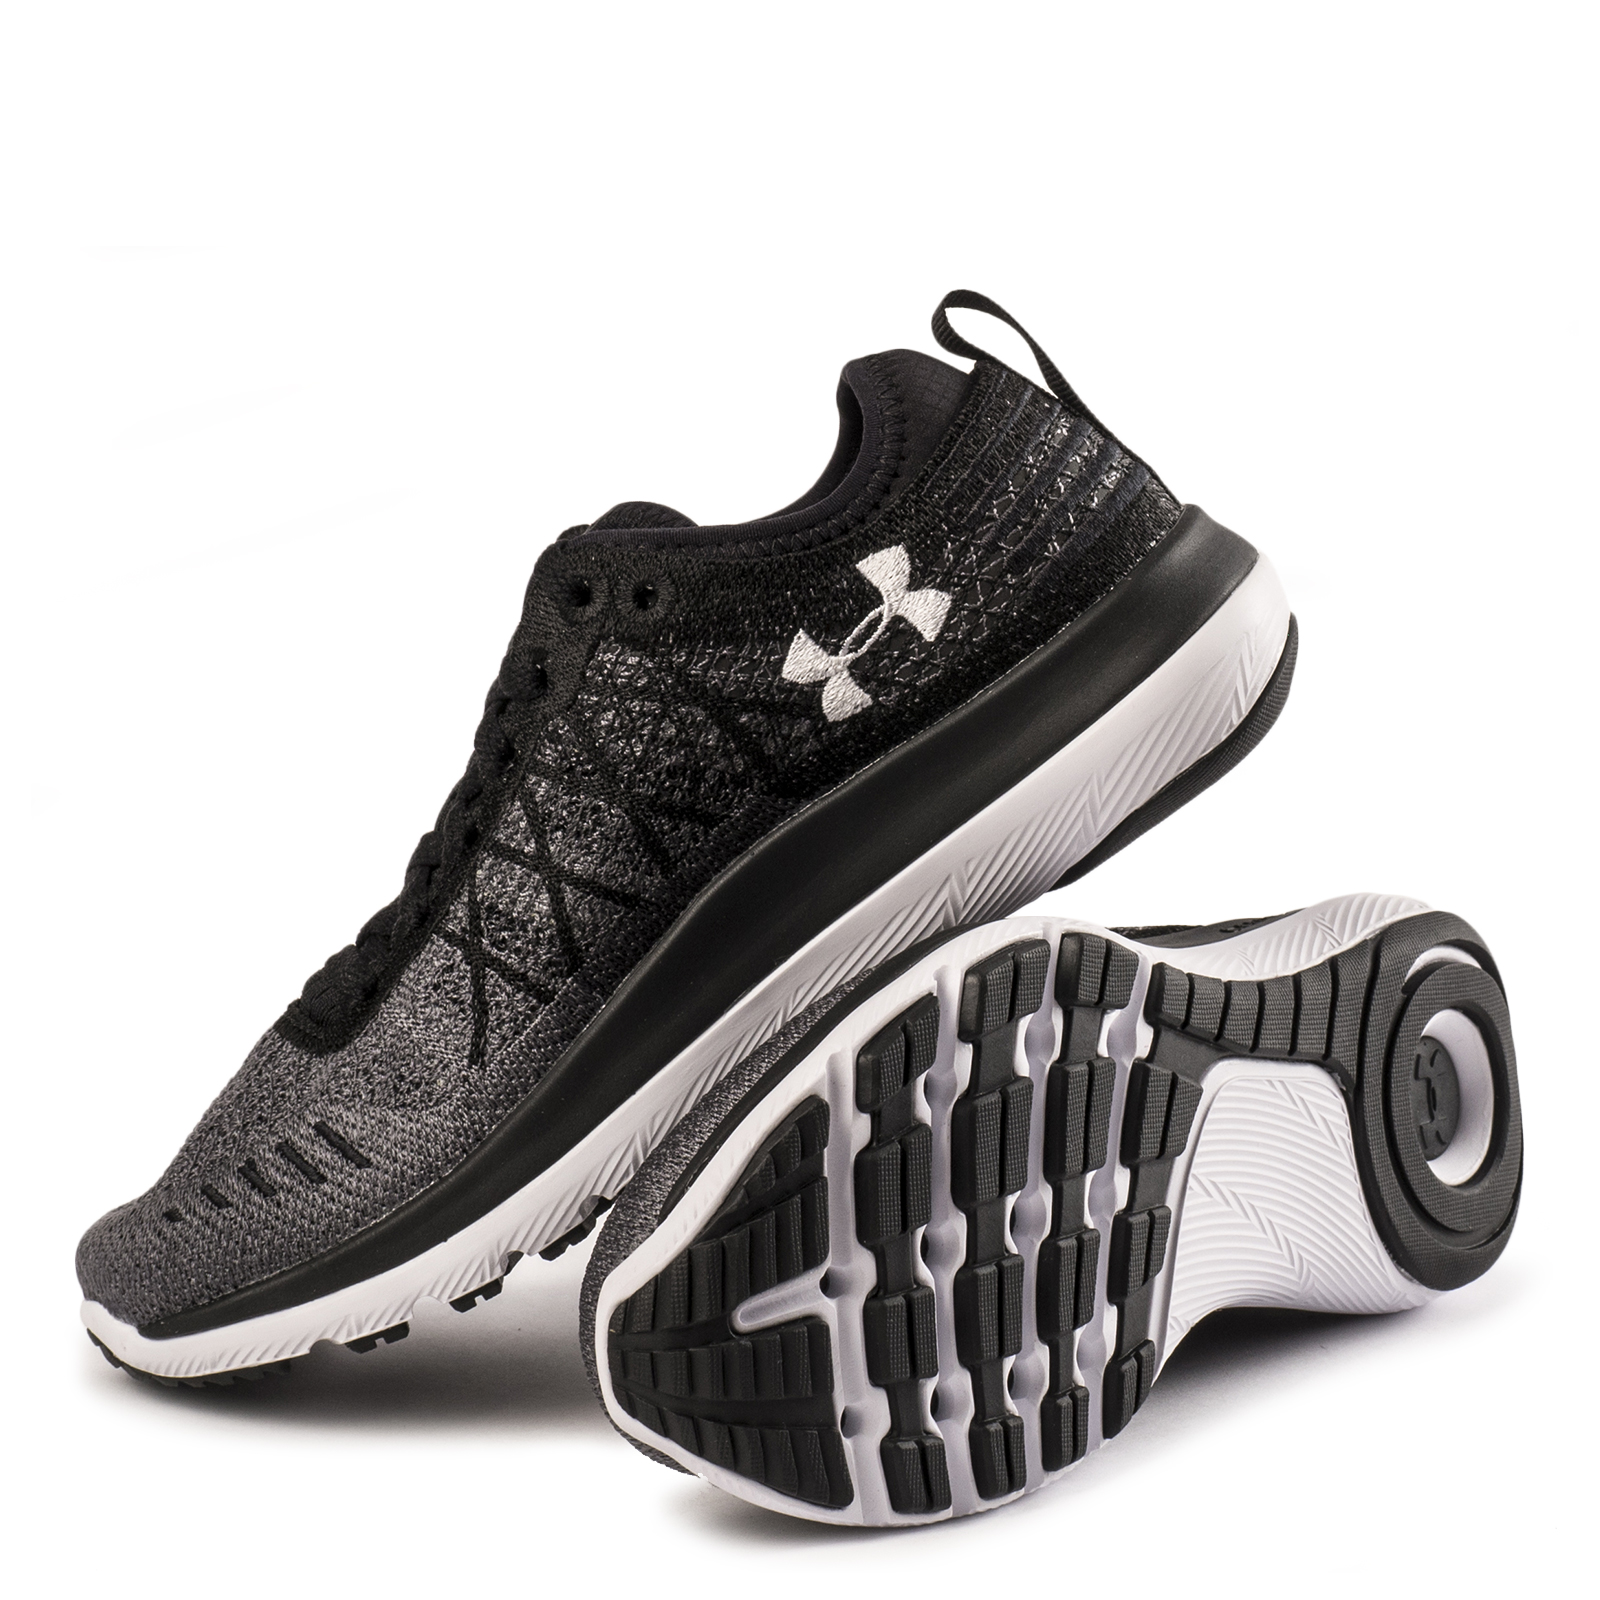 available from 10.11 Under Armour sports shoes men 1295768-001